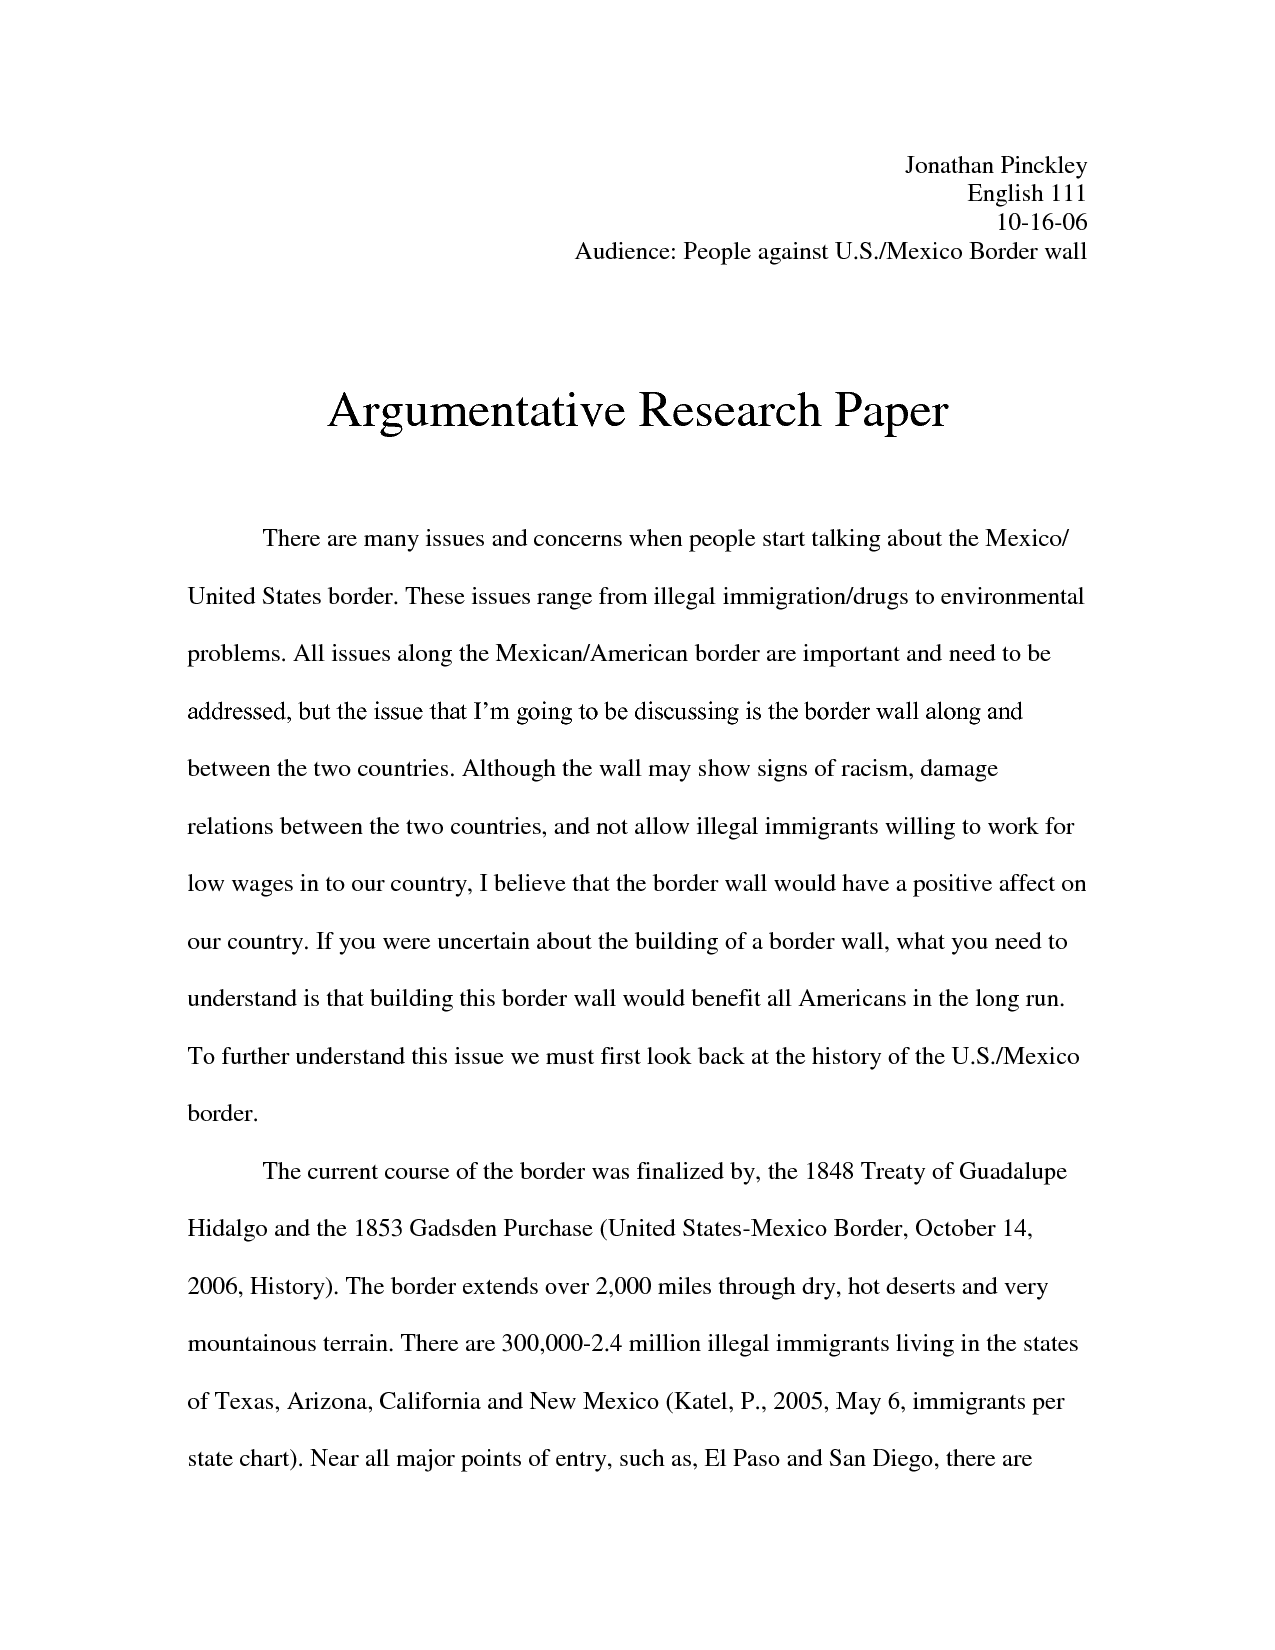 014 Uncategorized Debate20y Argumentative Thesis High School Topics Sentence Starters Outline Worksheet Structure20 For Research Rare A Paper Interesting Medical Full